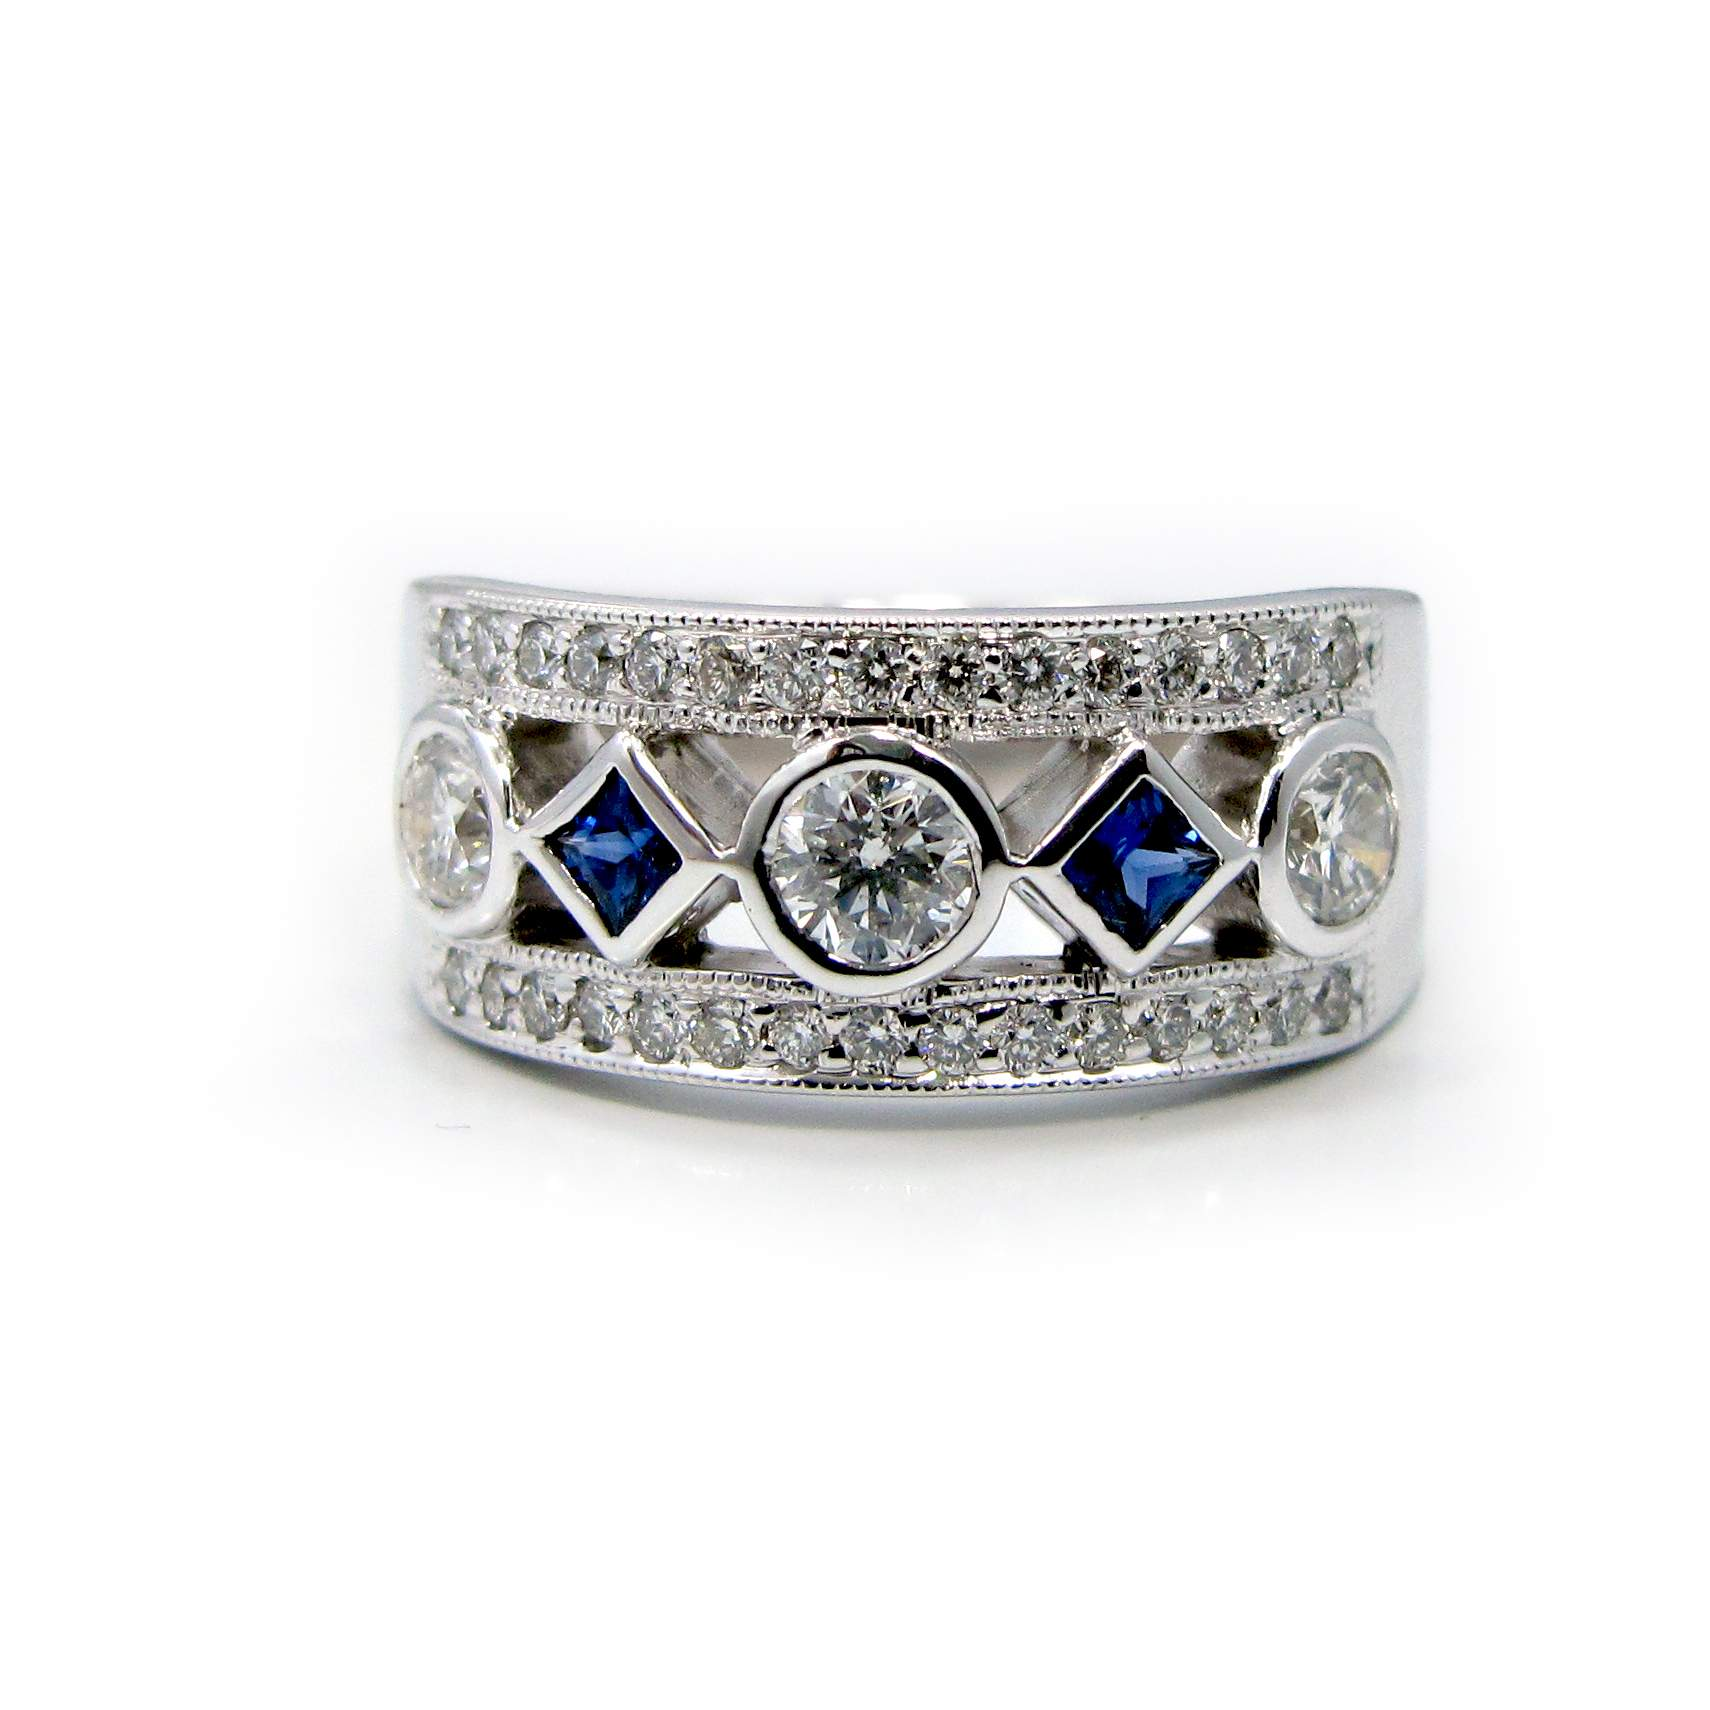 emotion jewellery crop false c subsampling rings the upscale shop sapphire scale editor faberge ring blue product faberg